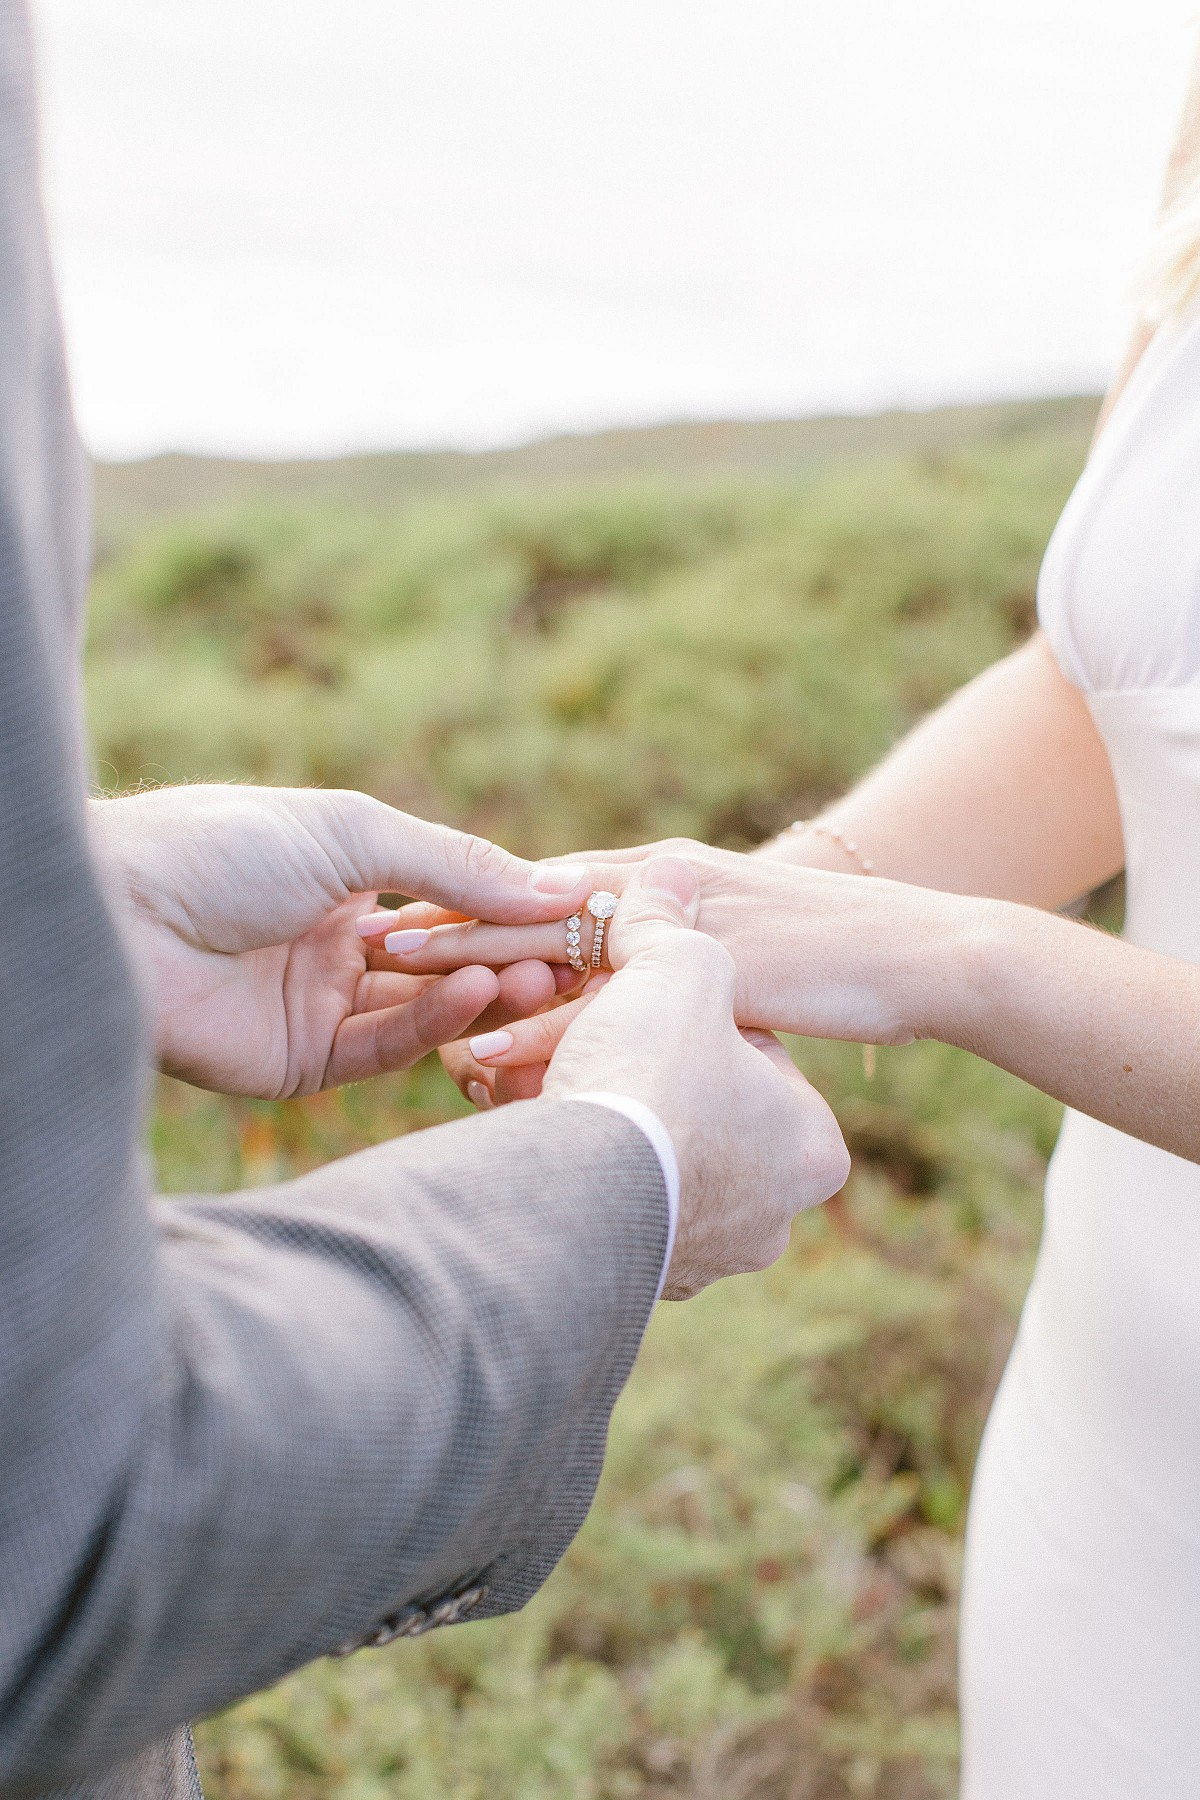 A Magical Cliffside Elopement - How a Couple Eloped After Covid Canceled Their Wedding